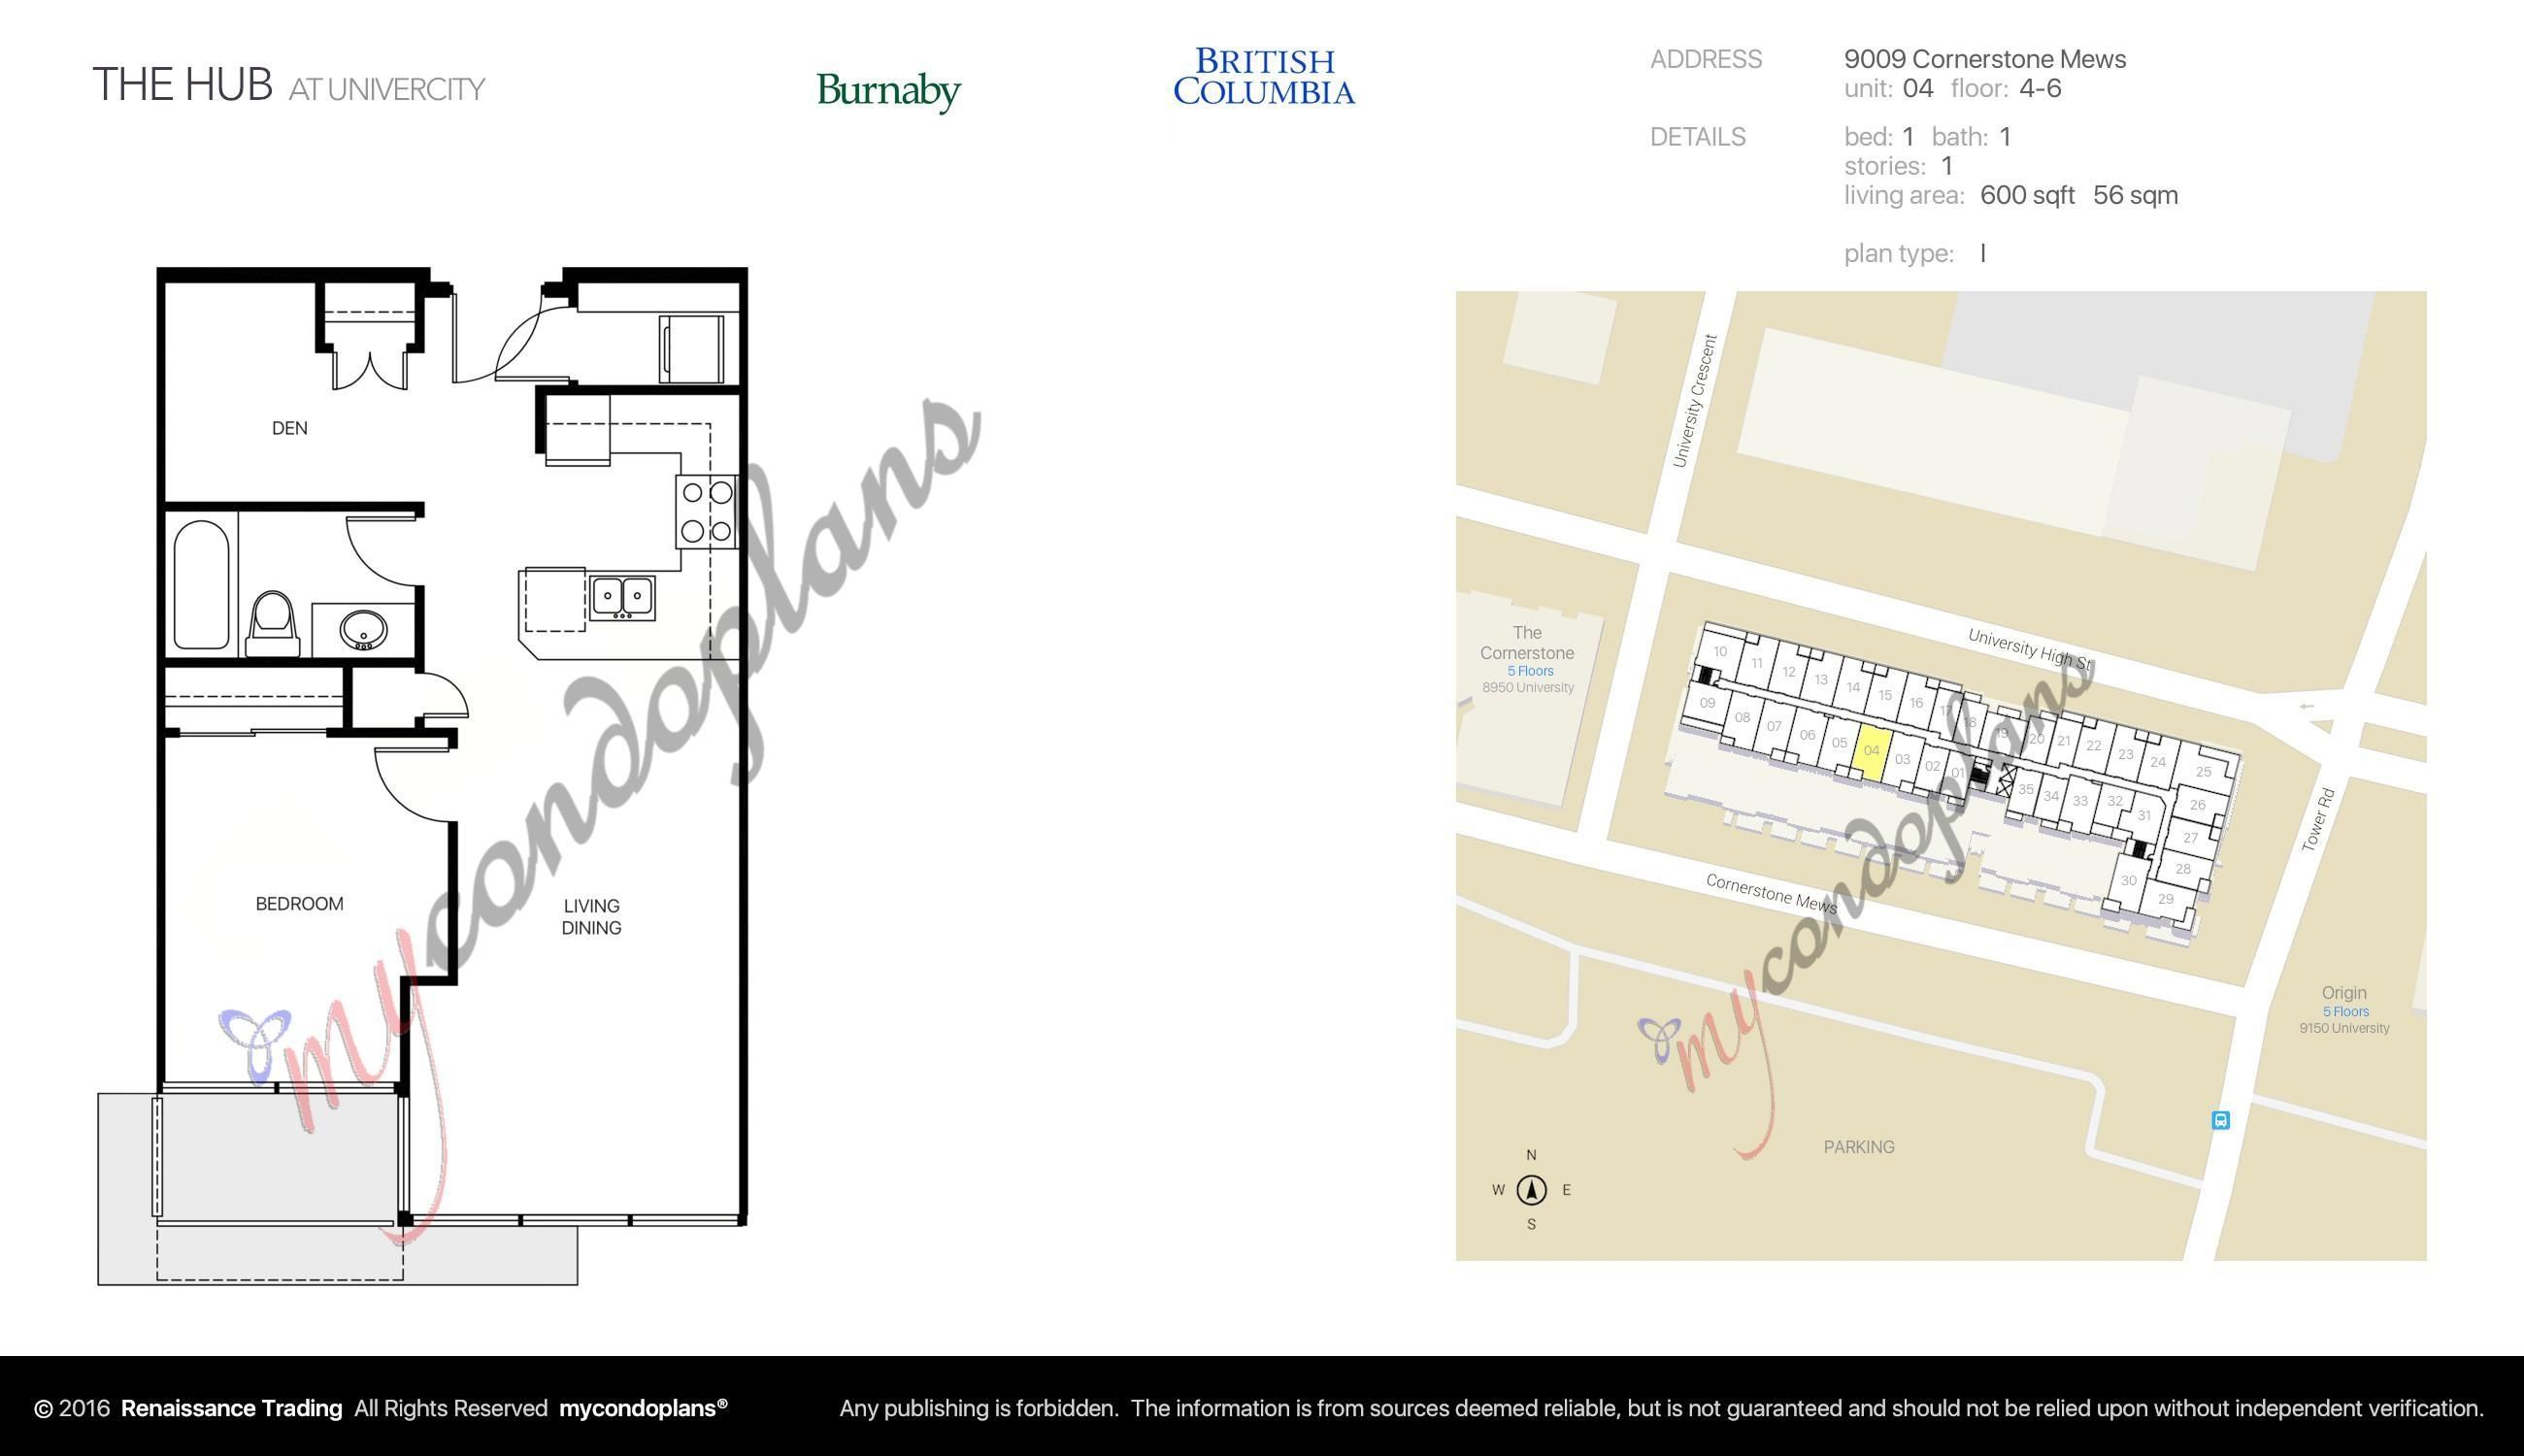 """Main Photo: 504 9009 CORNERSTONE Mews in Burnaby: Simon Fraser Univer. Condo for sale in """"THE HUB"""" (Burnaby North)  : MLS®# R2622335"""